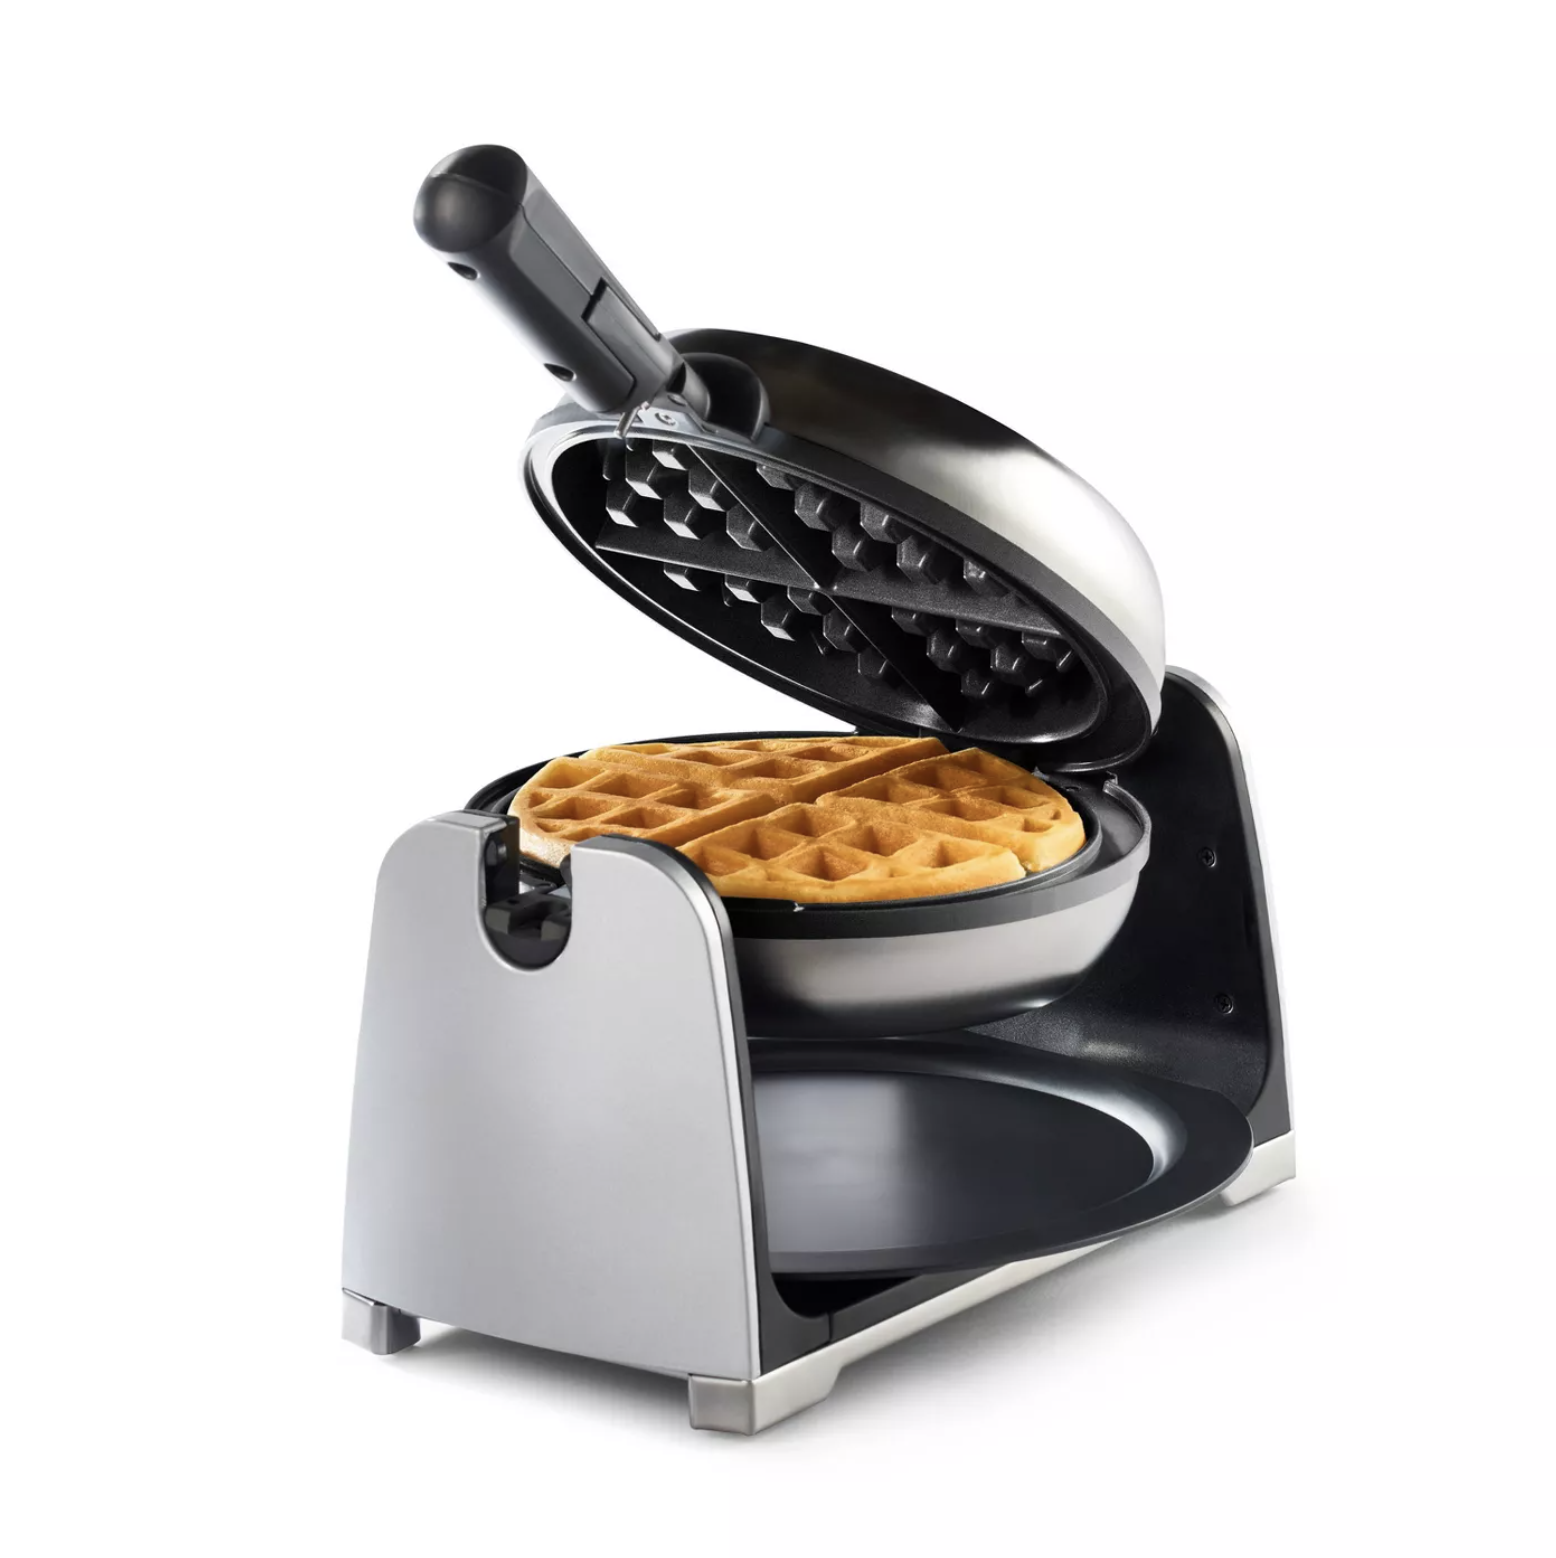 Oster DiamondForce Nonstick Flip Waffle Maker